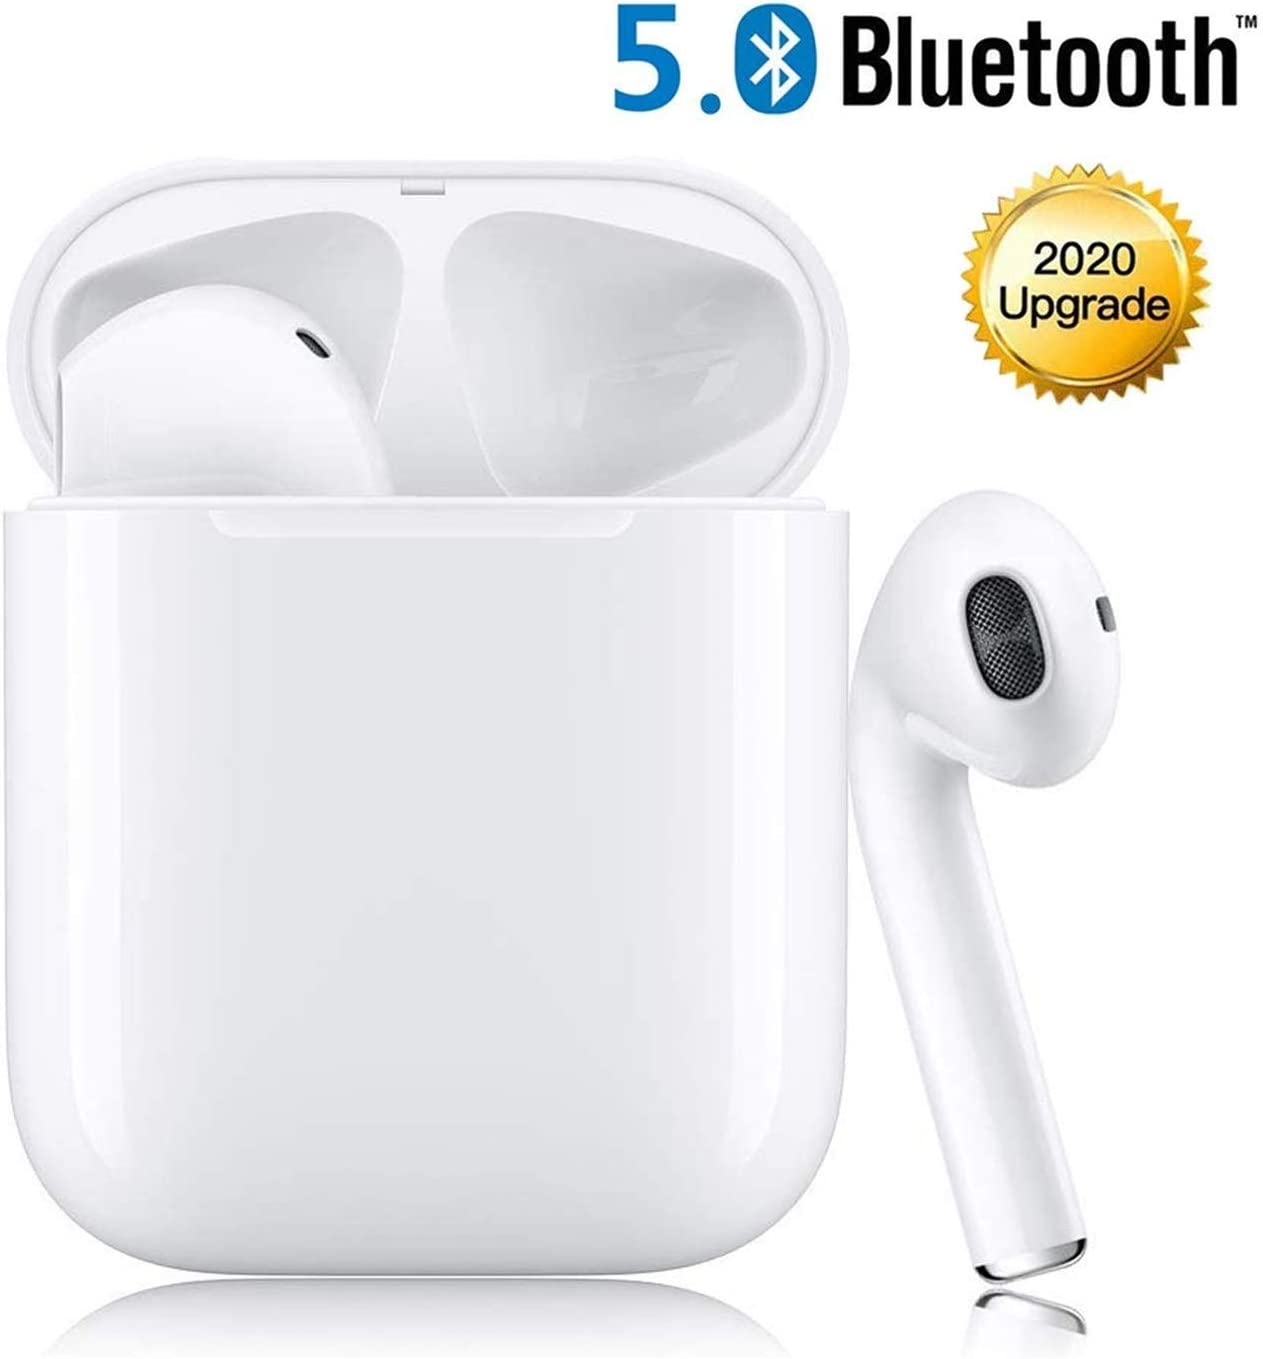 Bluetooth Wireless Earbuds Noise Canceling Sports Headphones with Charging Case IPX5 Waterproof Stereo Earphones in-Ear Built-in HD Mic Headsets for iPhone Android Samsung White